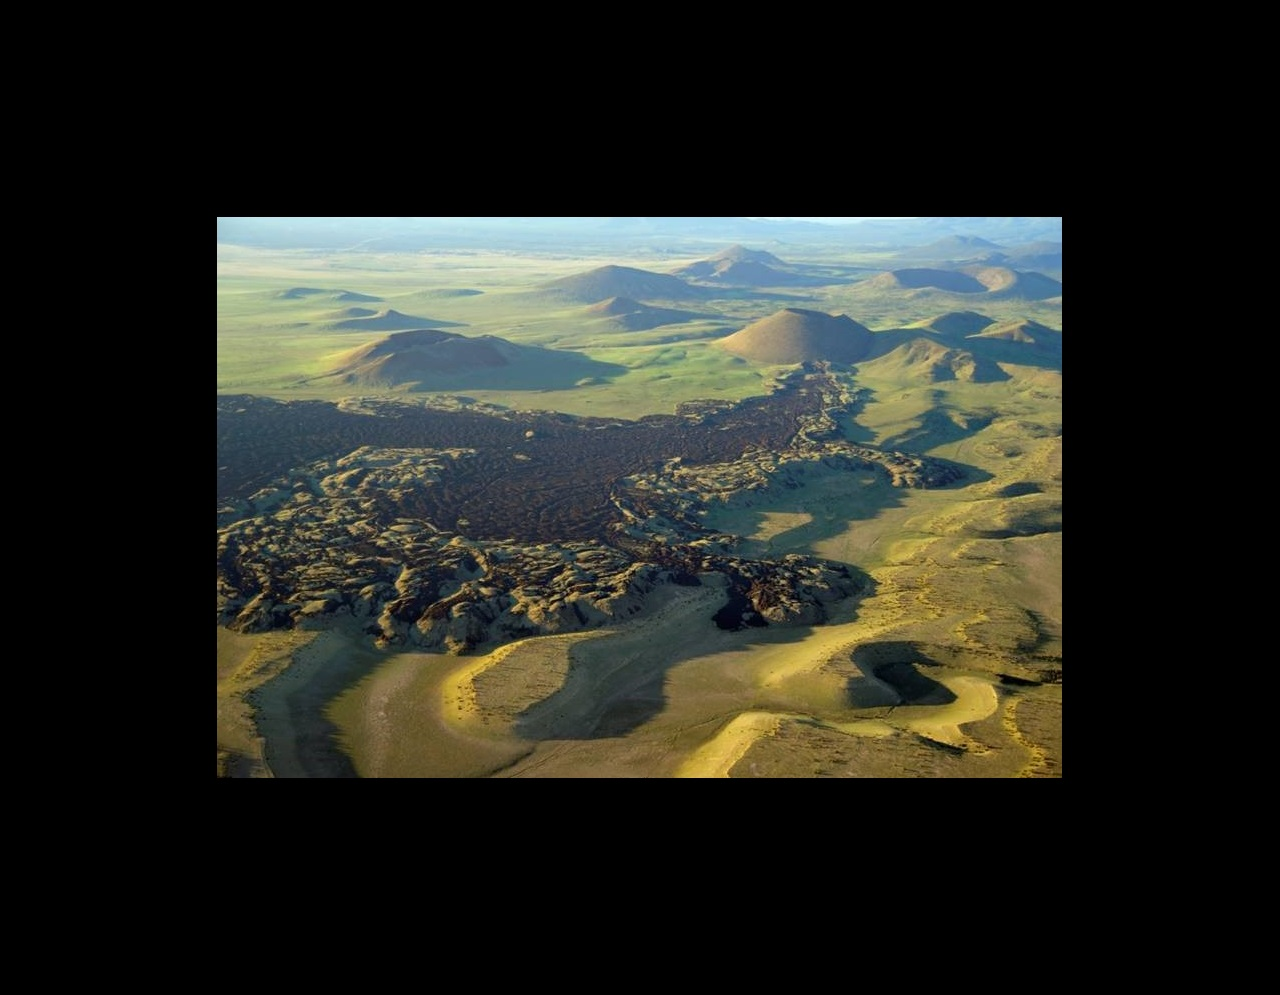 Aerial image of the San Francisco Volcanic Field